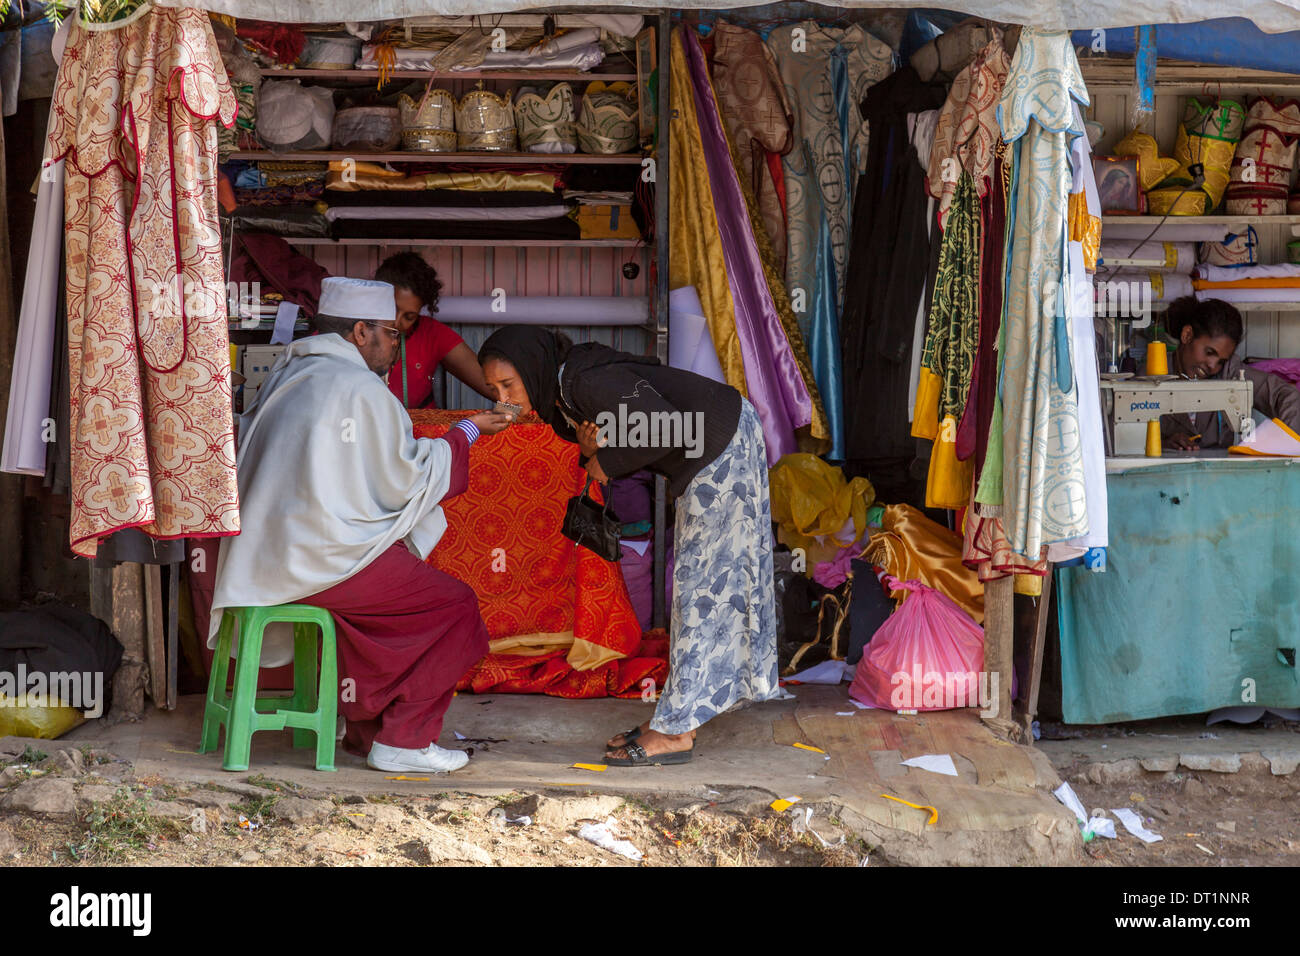 Street Scene, A Priest Blesses A Young Woman, Addis Ababa, Ethiopia - Stock Image